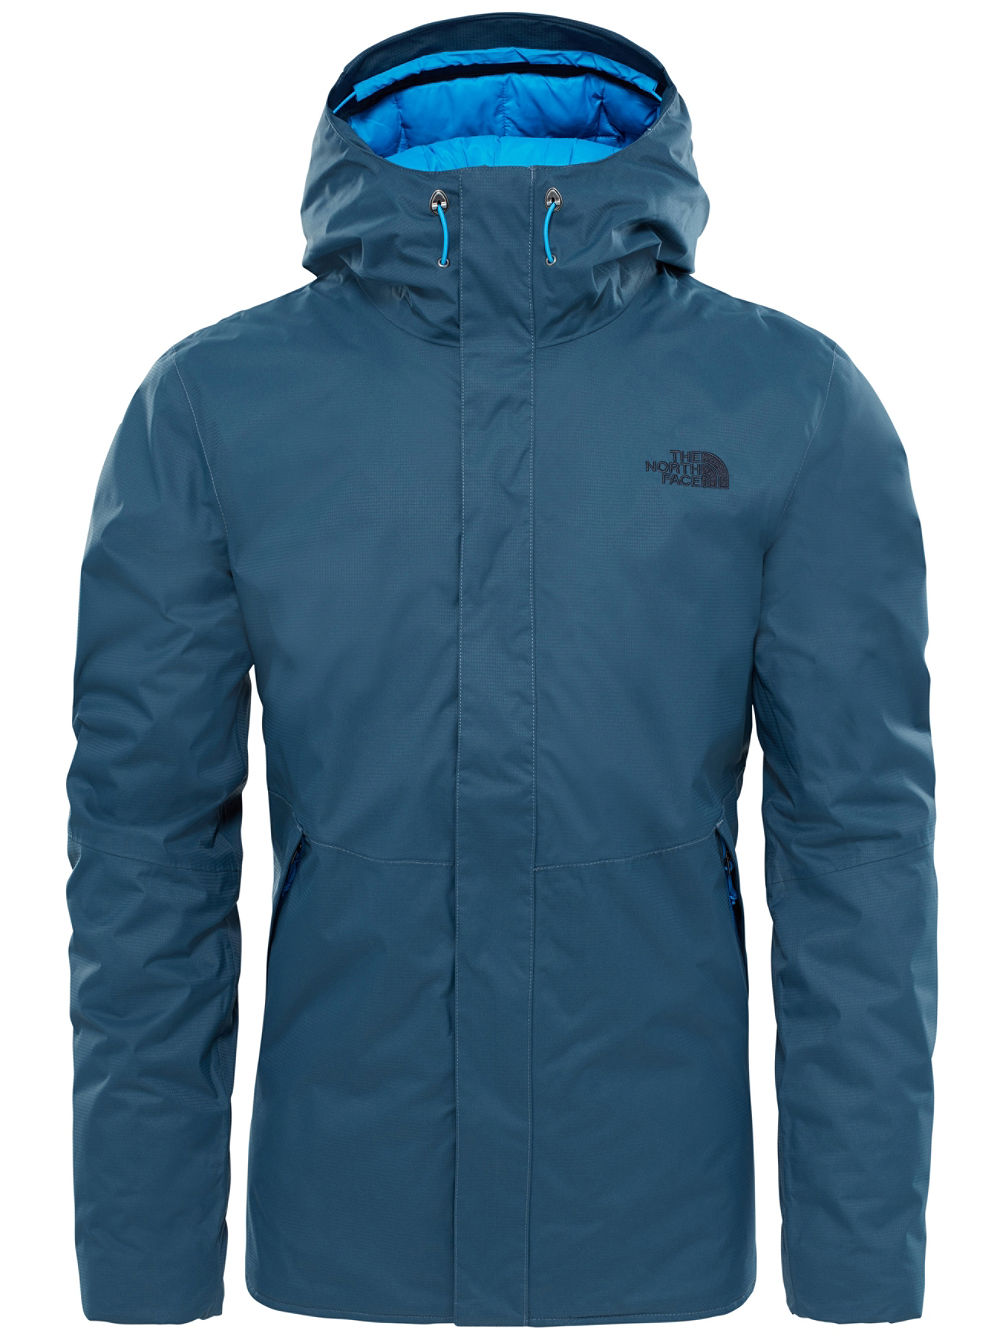 Thermoball Ins Shell Outdoorjacke